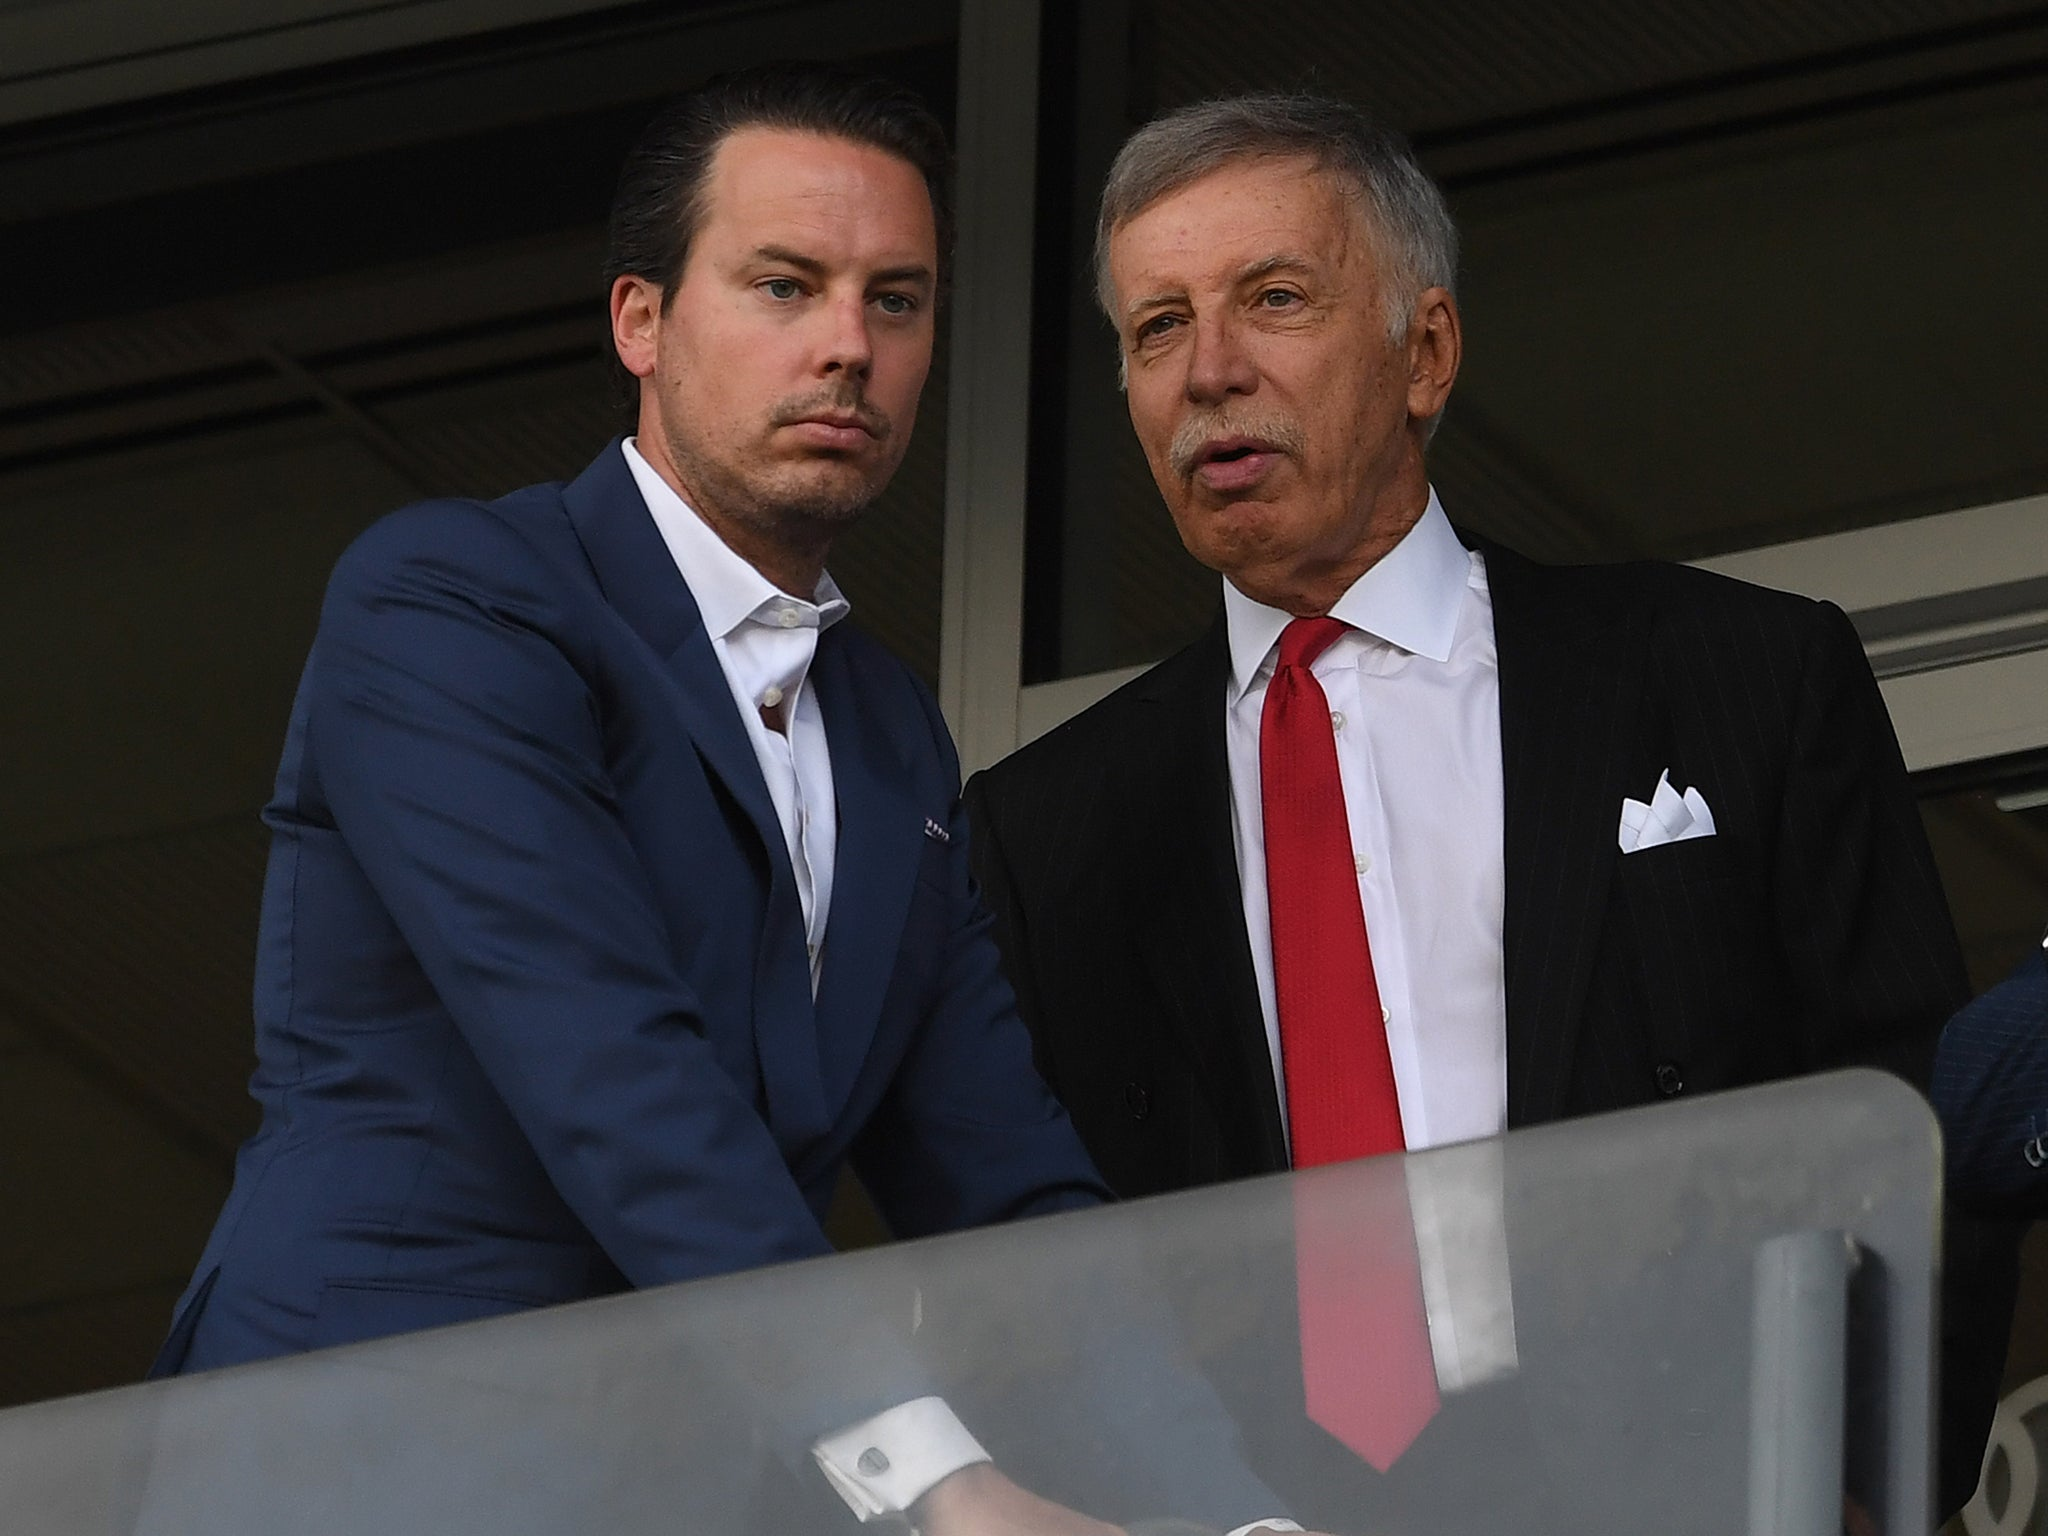 Arsenal decided on 'aggressive' transfer approach after Europa League final defeat, says Josh Kroenke